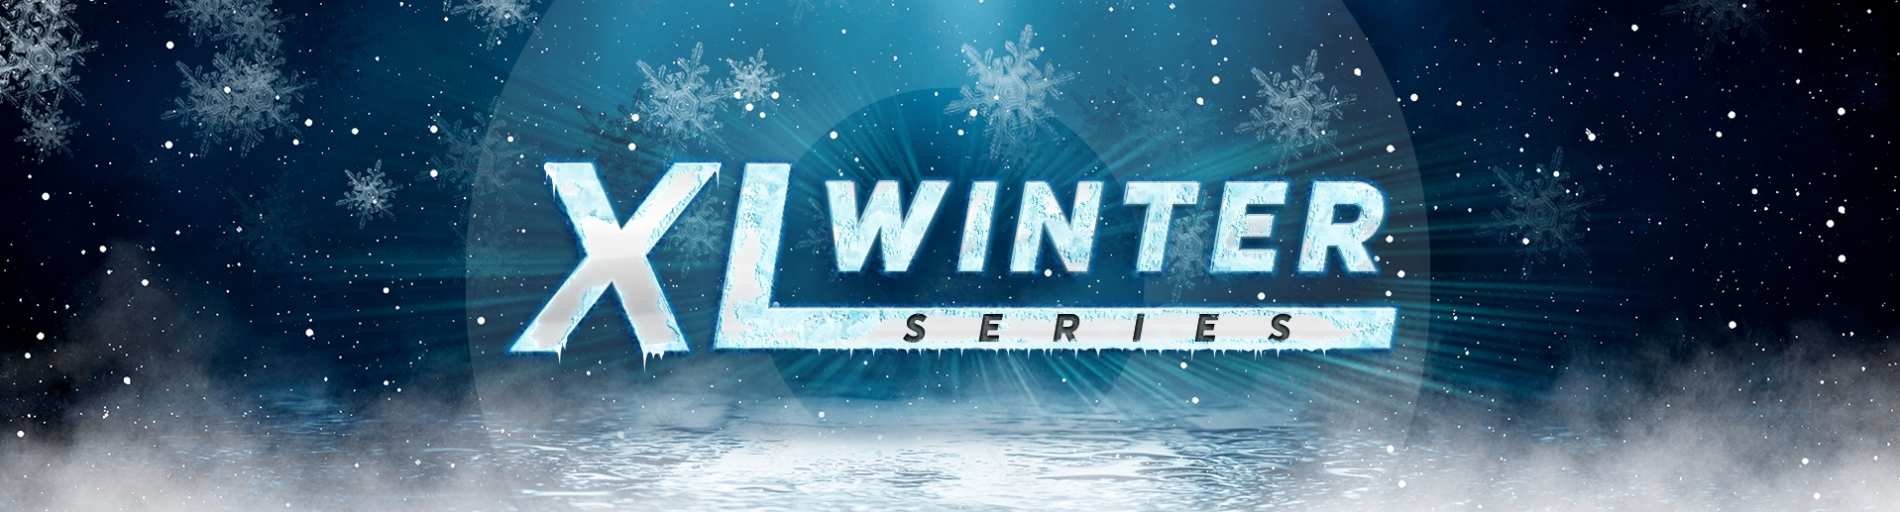 XL WINTER SERIES 2020